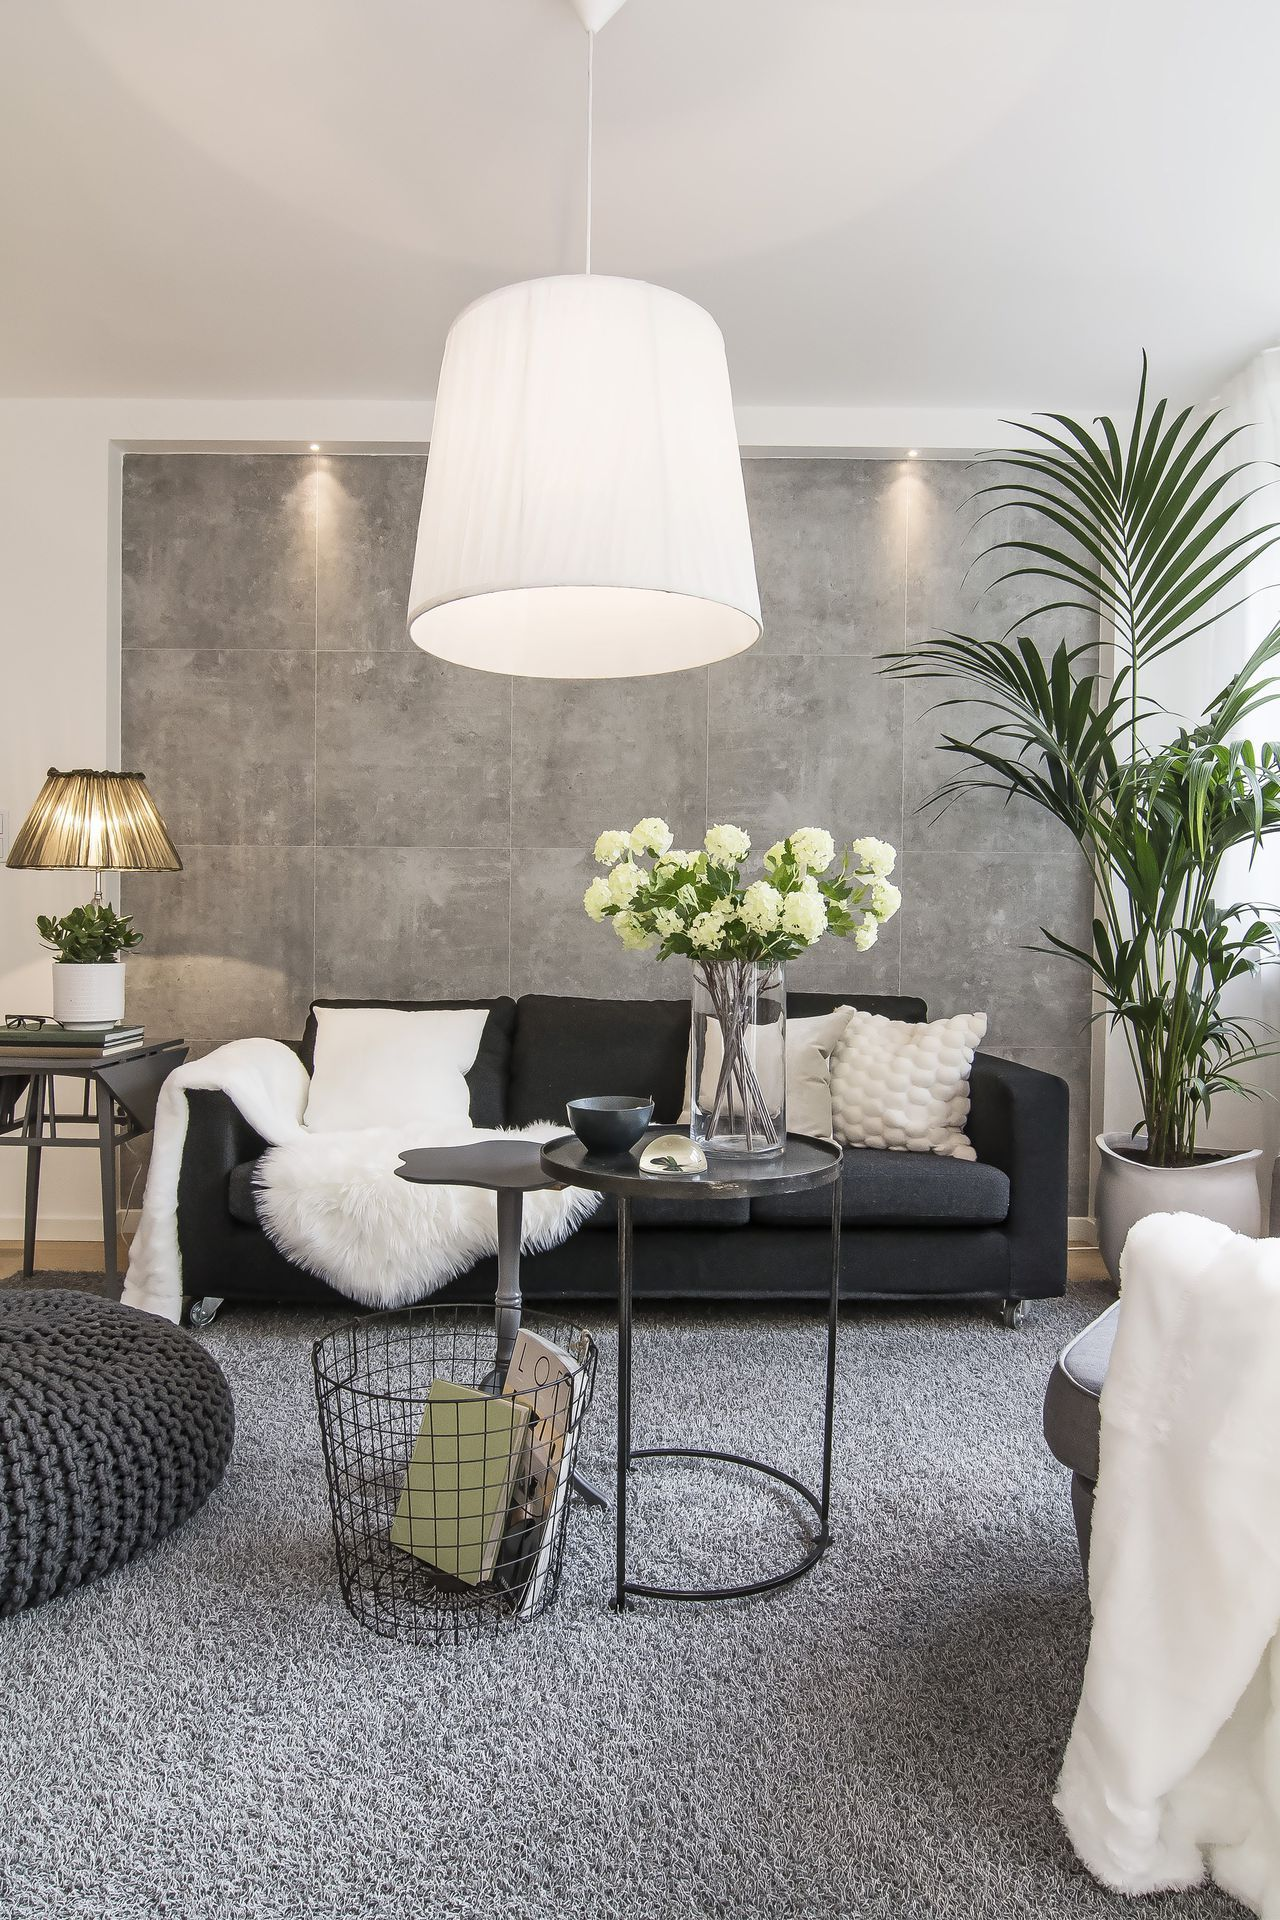 living room | home sweet home | Pinterest | Salón, Interiores y Sala ...